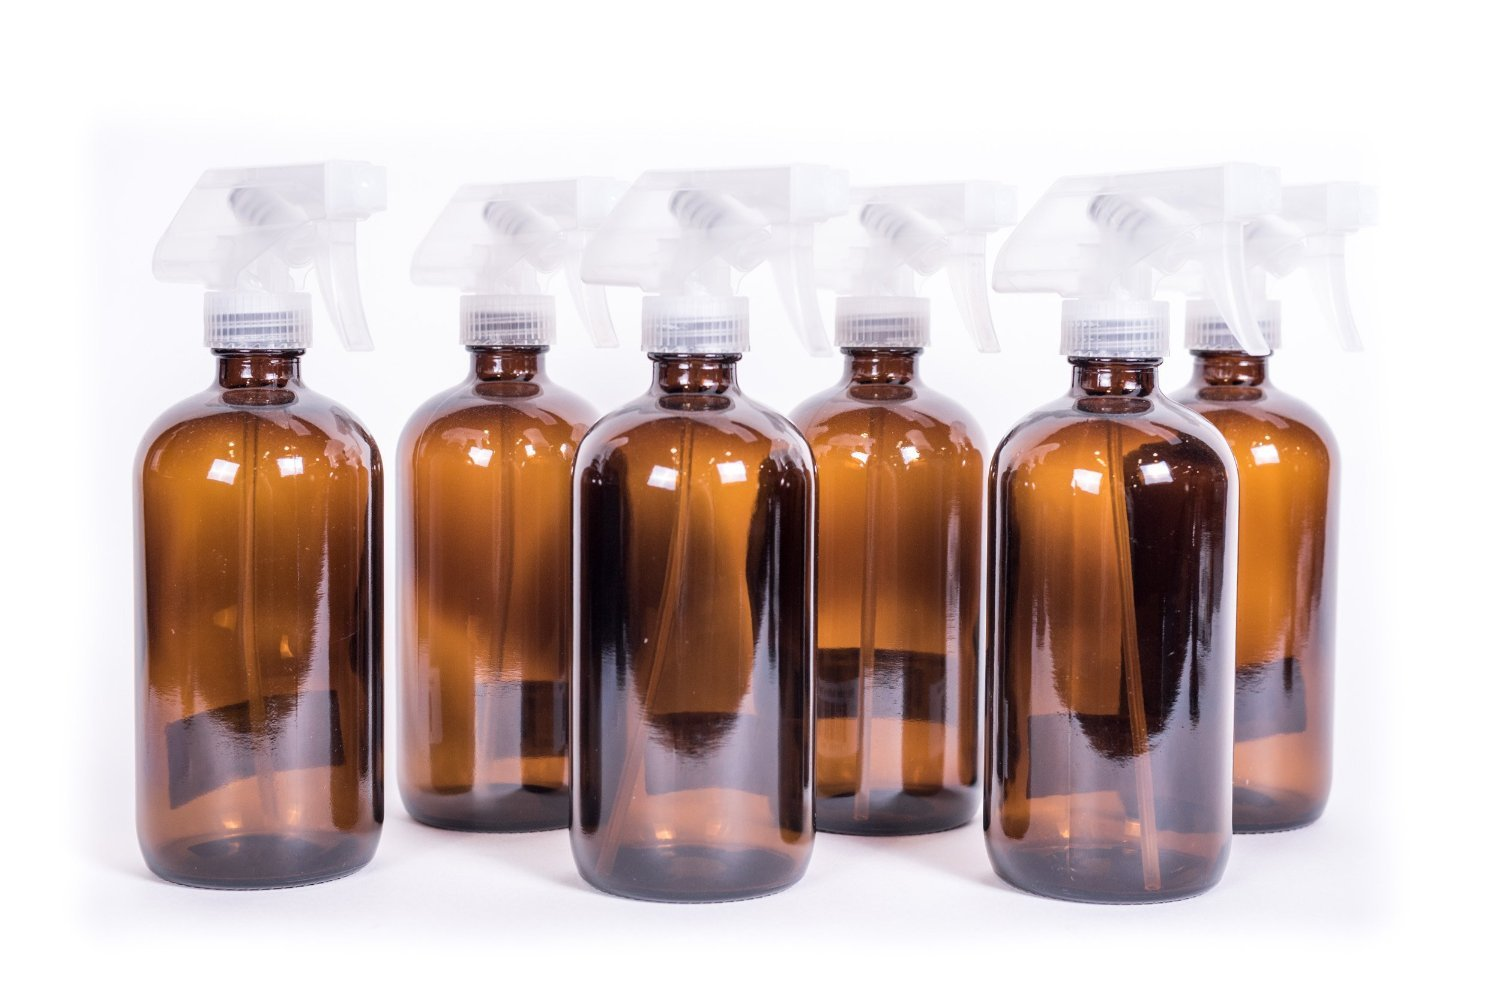 16oz Amber Glass Bottle with Trigger Sprayer for Essential Oils (6-pack) My Oil Gear